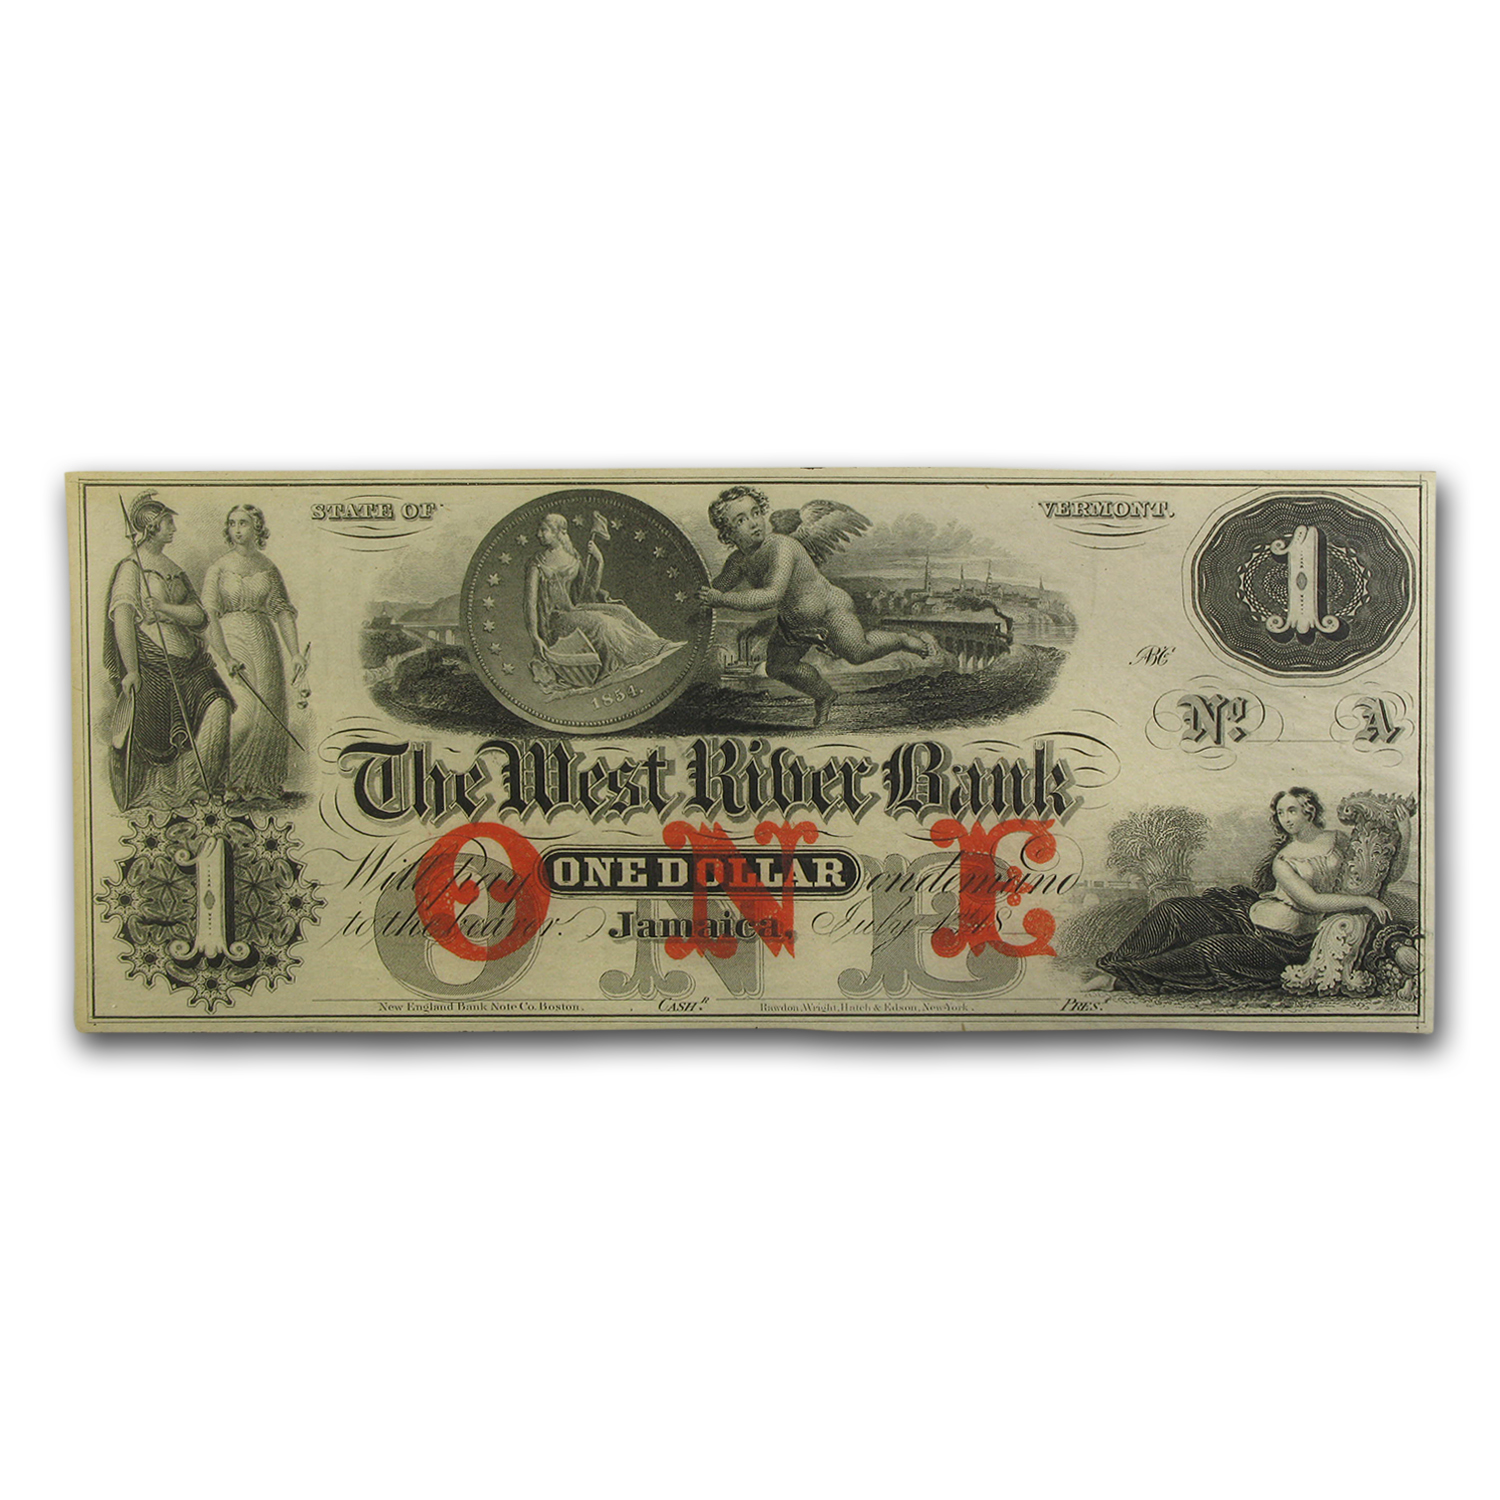 18__ The West River Bank, Jamaica, VT $1.00 Note AU-55 PMG